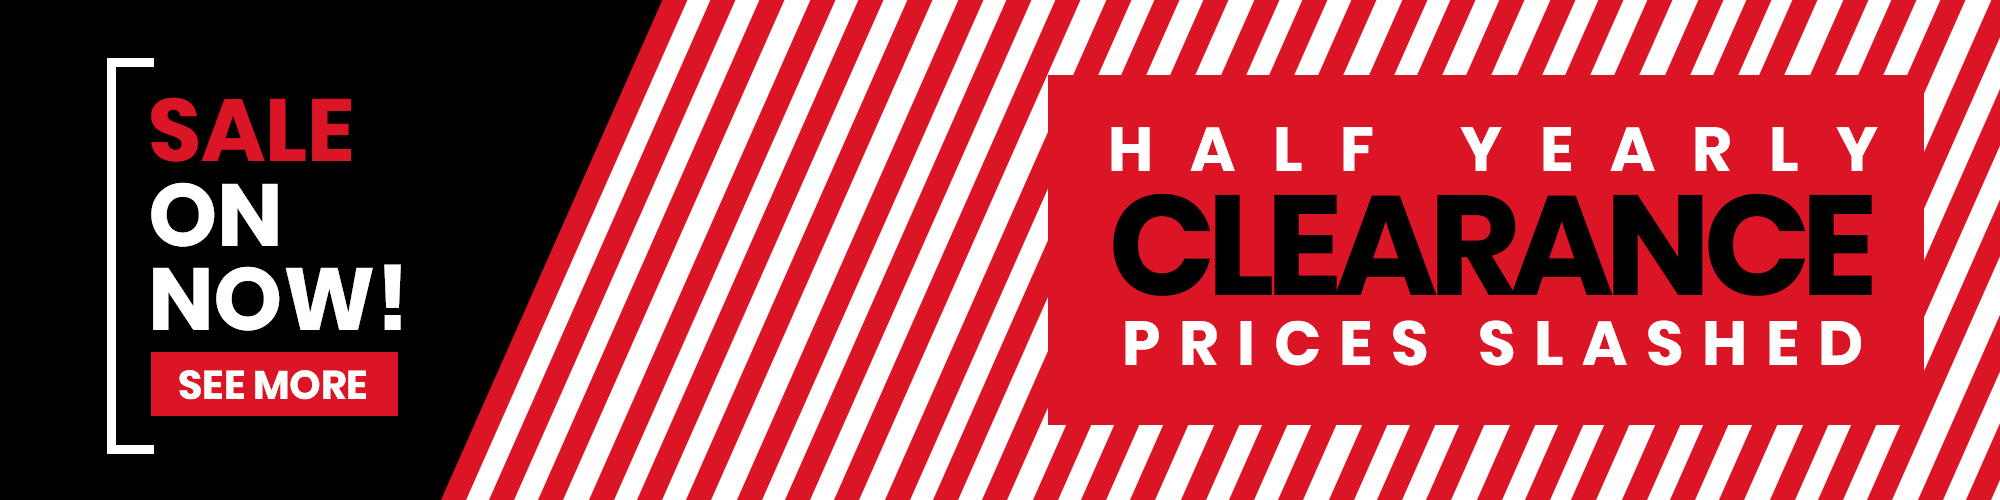 HALF YEARLY CLEARANCE SALE ON NOW!